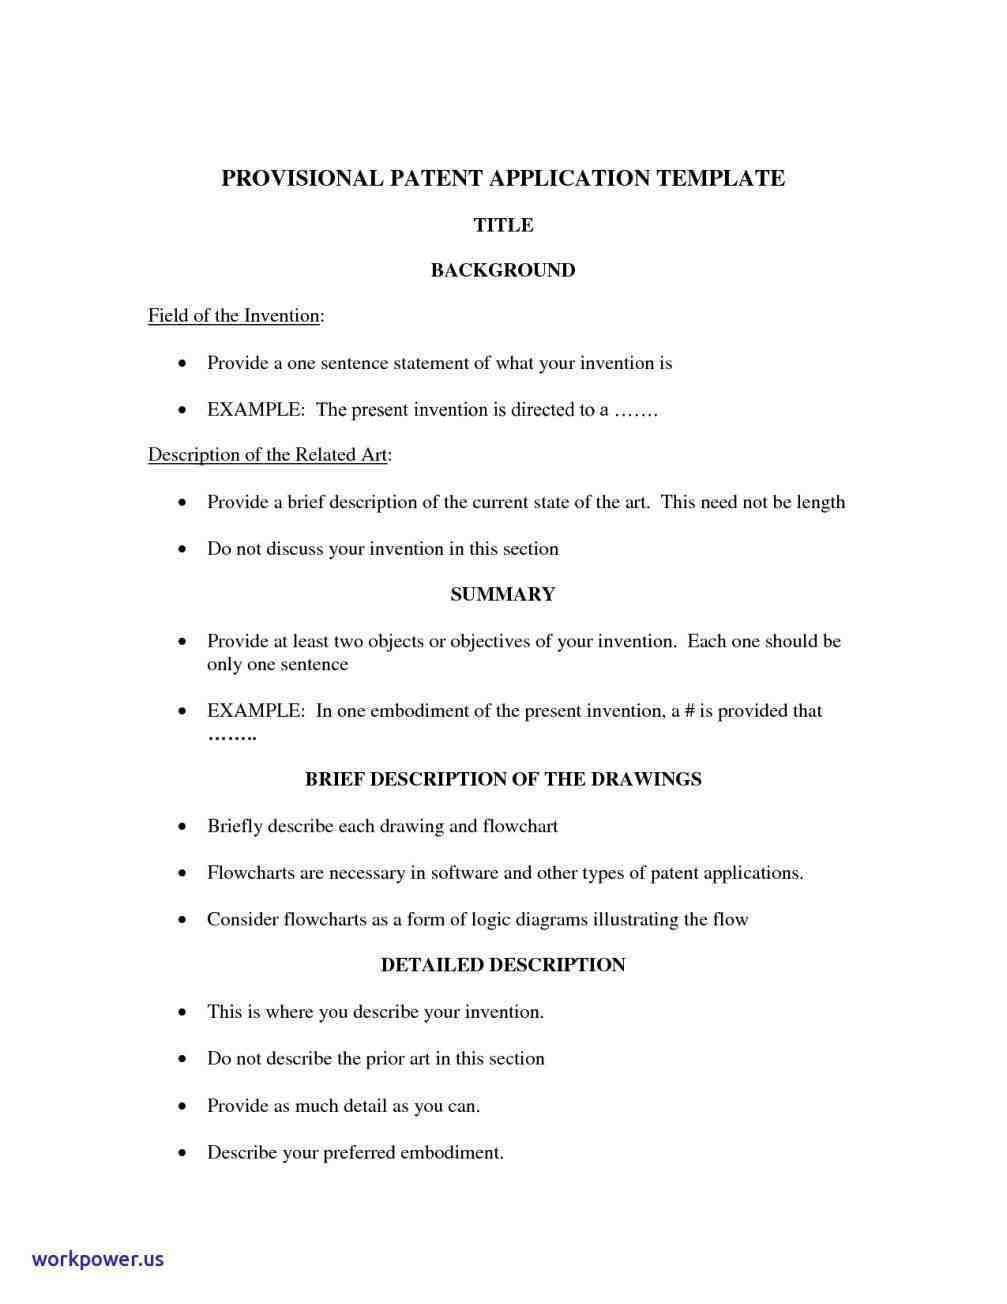 Provisional Patent Template Example